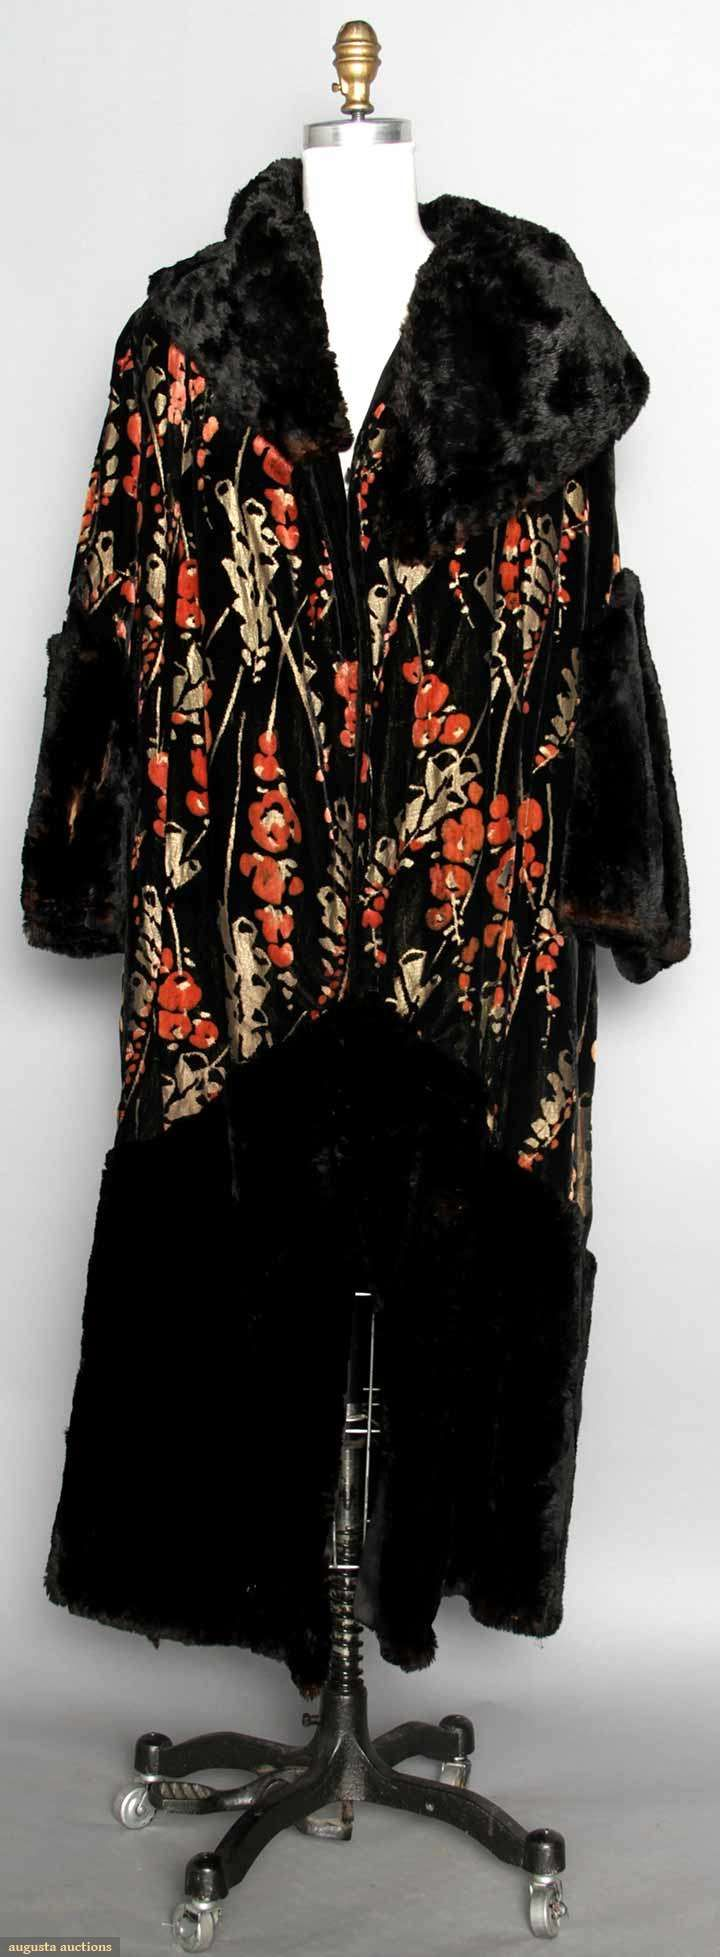 Printed & Lame Velvet Opera Coat, 1920s, Augusta Auctions, MAY 13th & 14th, 2014, Lot 151